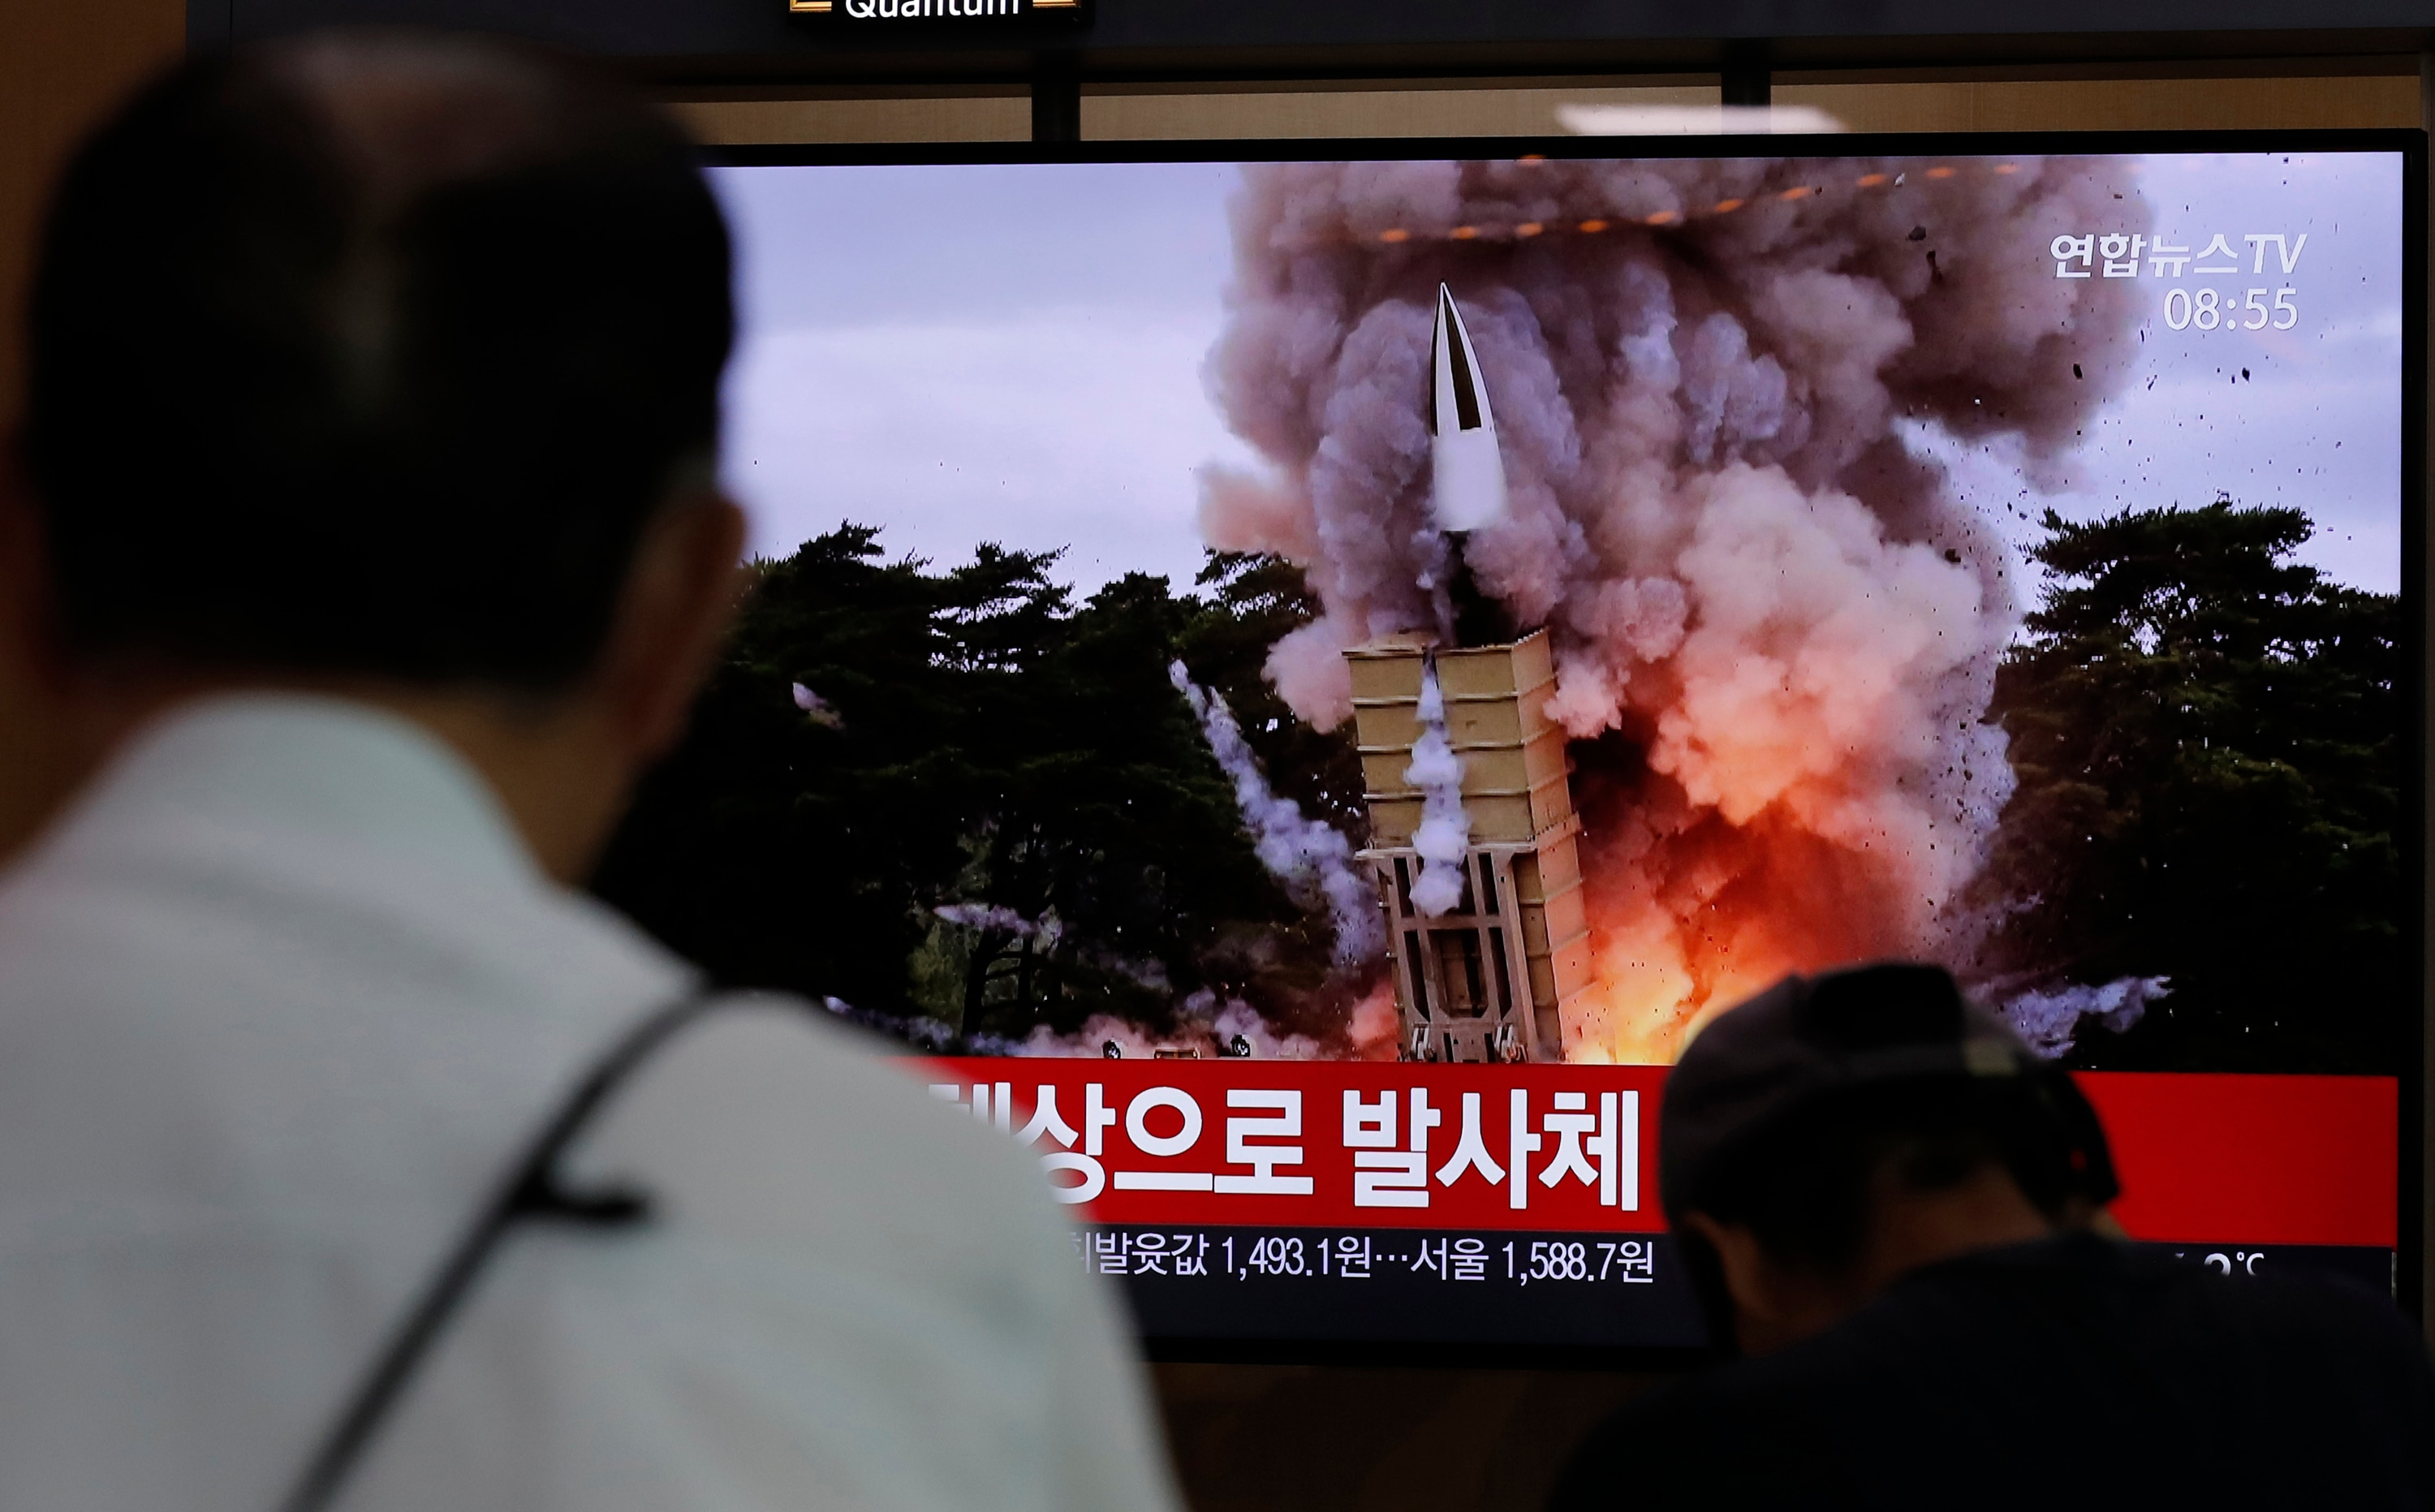 People watch a TV news program reporting about North Korea's firing of projectiles.